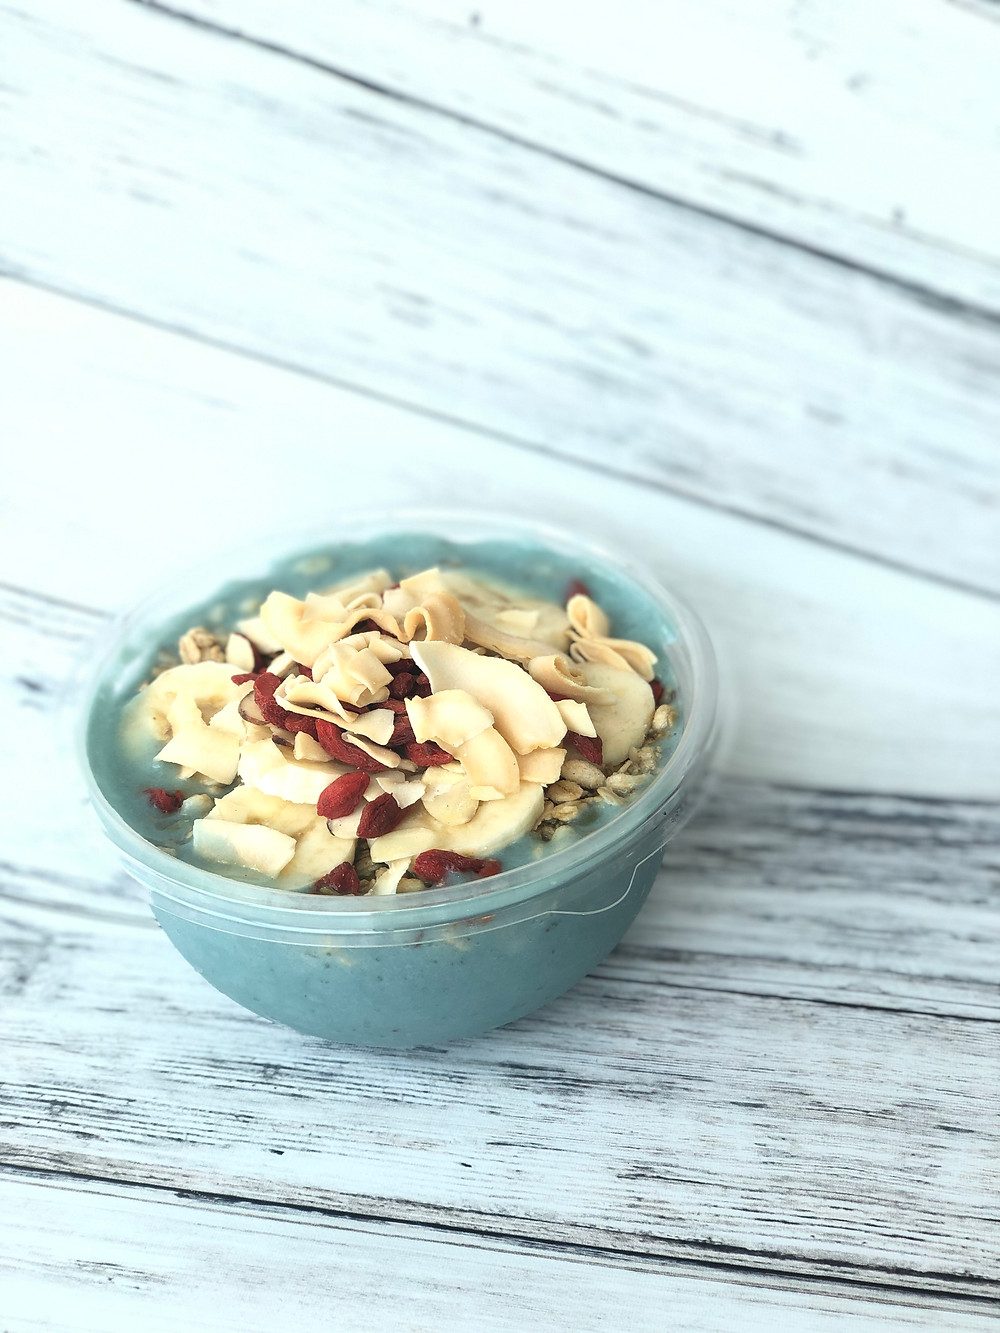 A smoothie bowl topped with banana, goji berries, and coconut flakes.